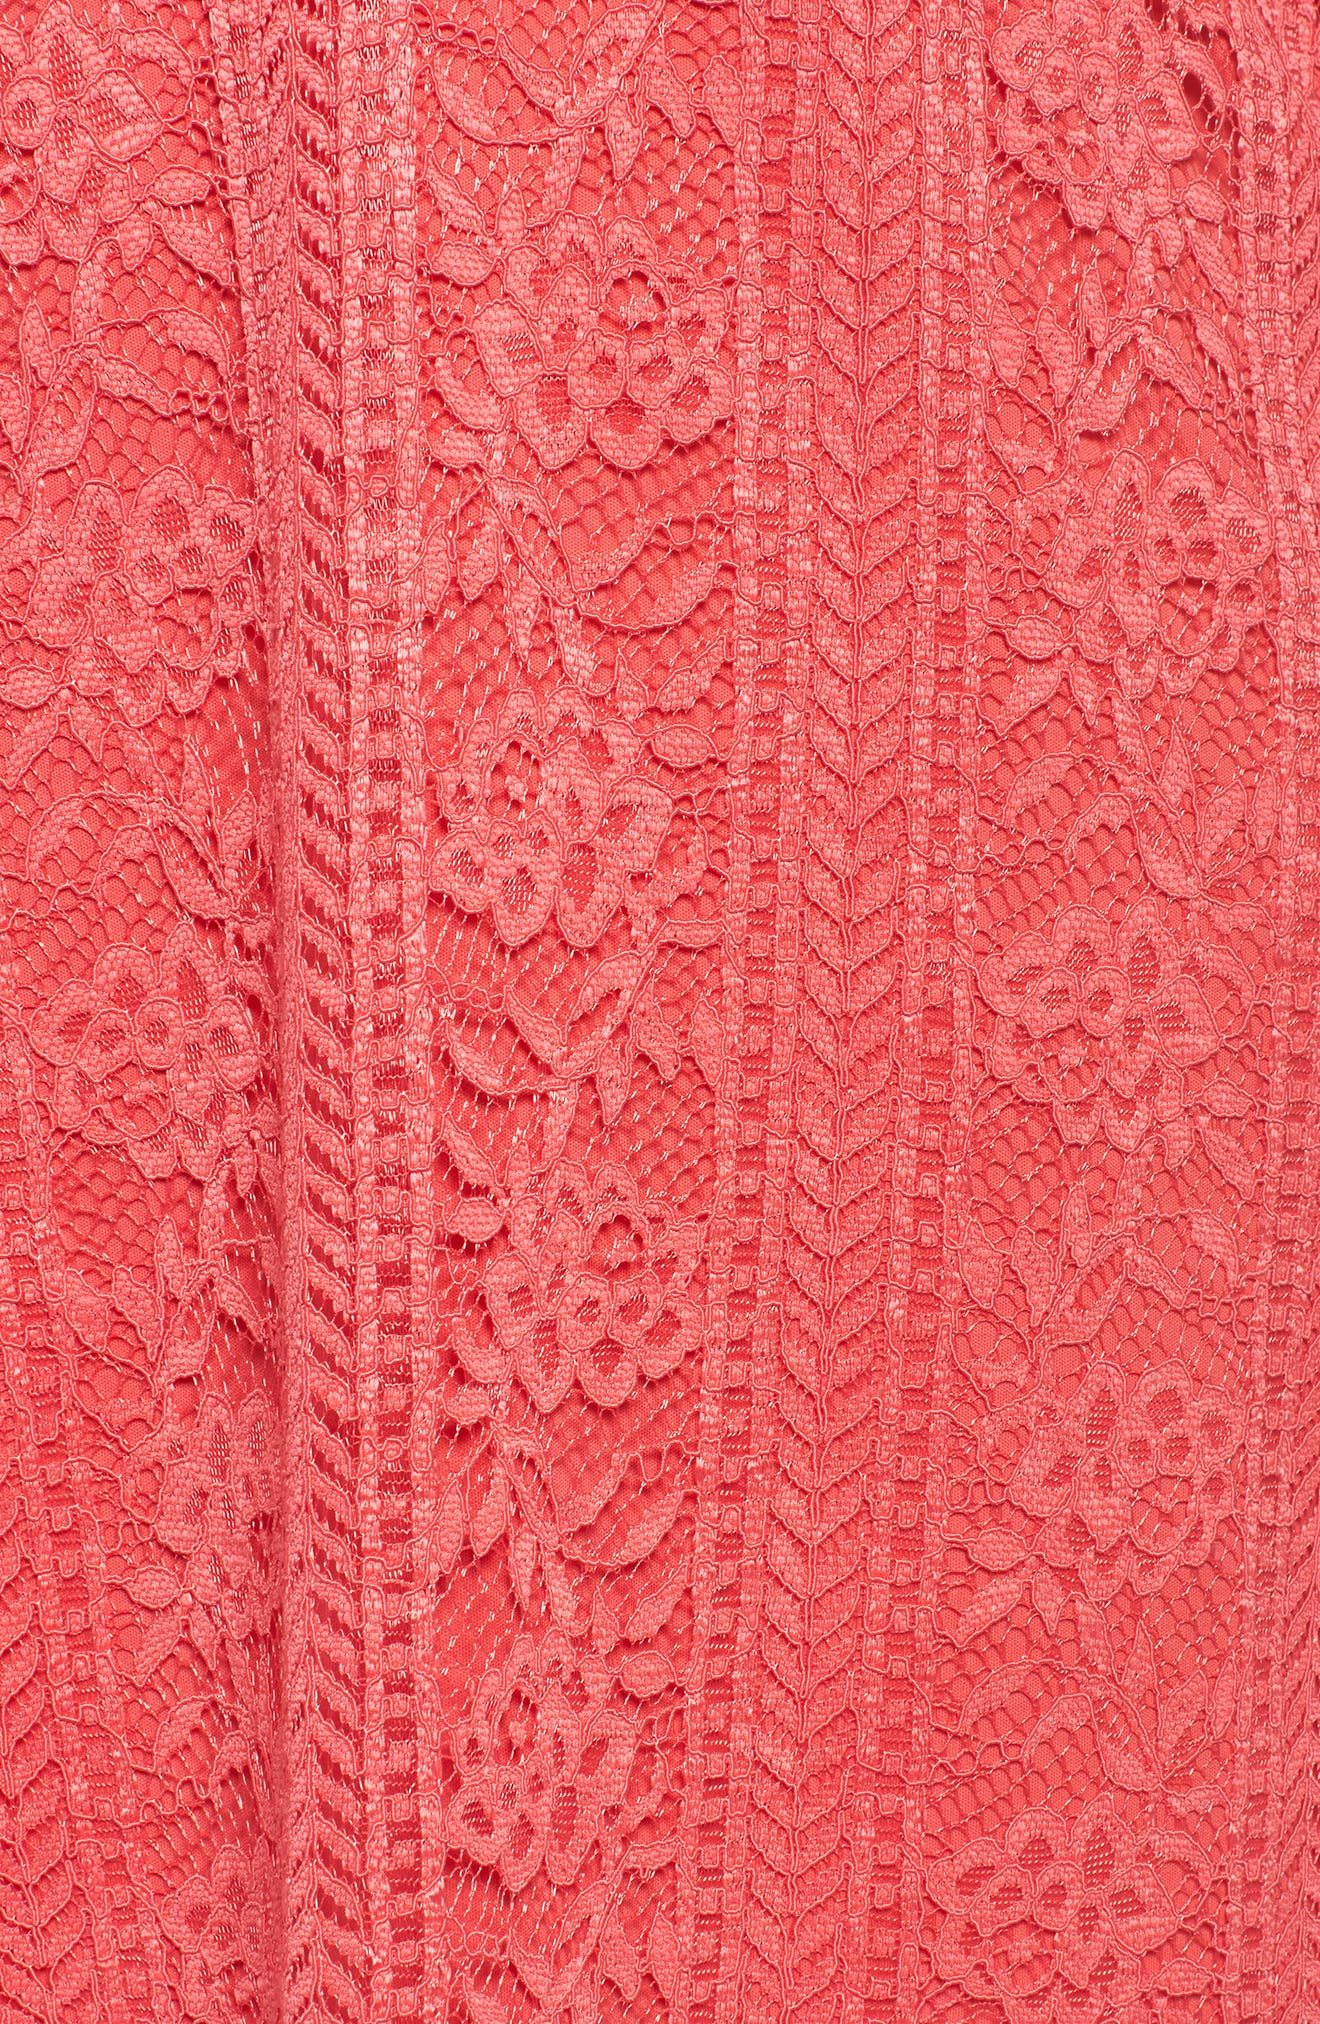 Bell Sleeve Lace Shift Dress,                             Alternate thumbnail 5, color,                             655